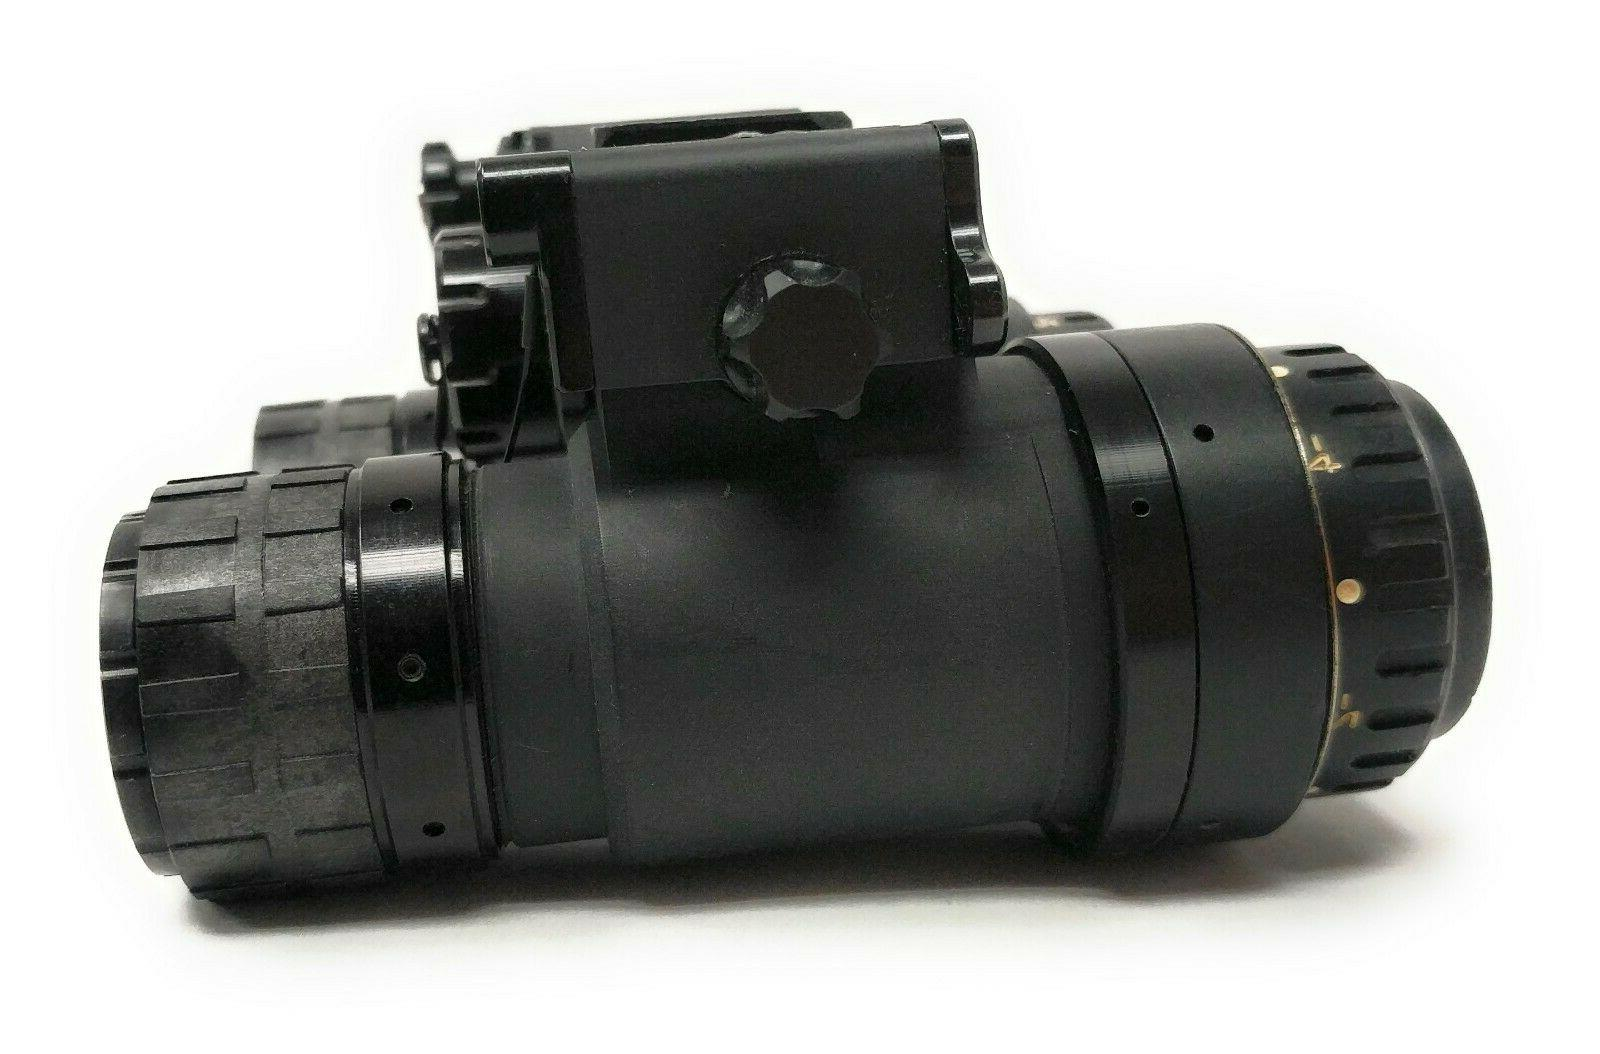 Carson Industries 1XEP3 Night Vision SNVG-BNVS w/ F9800H